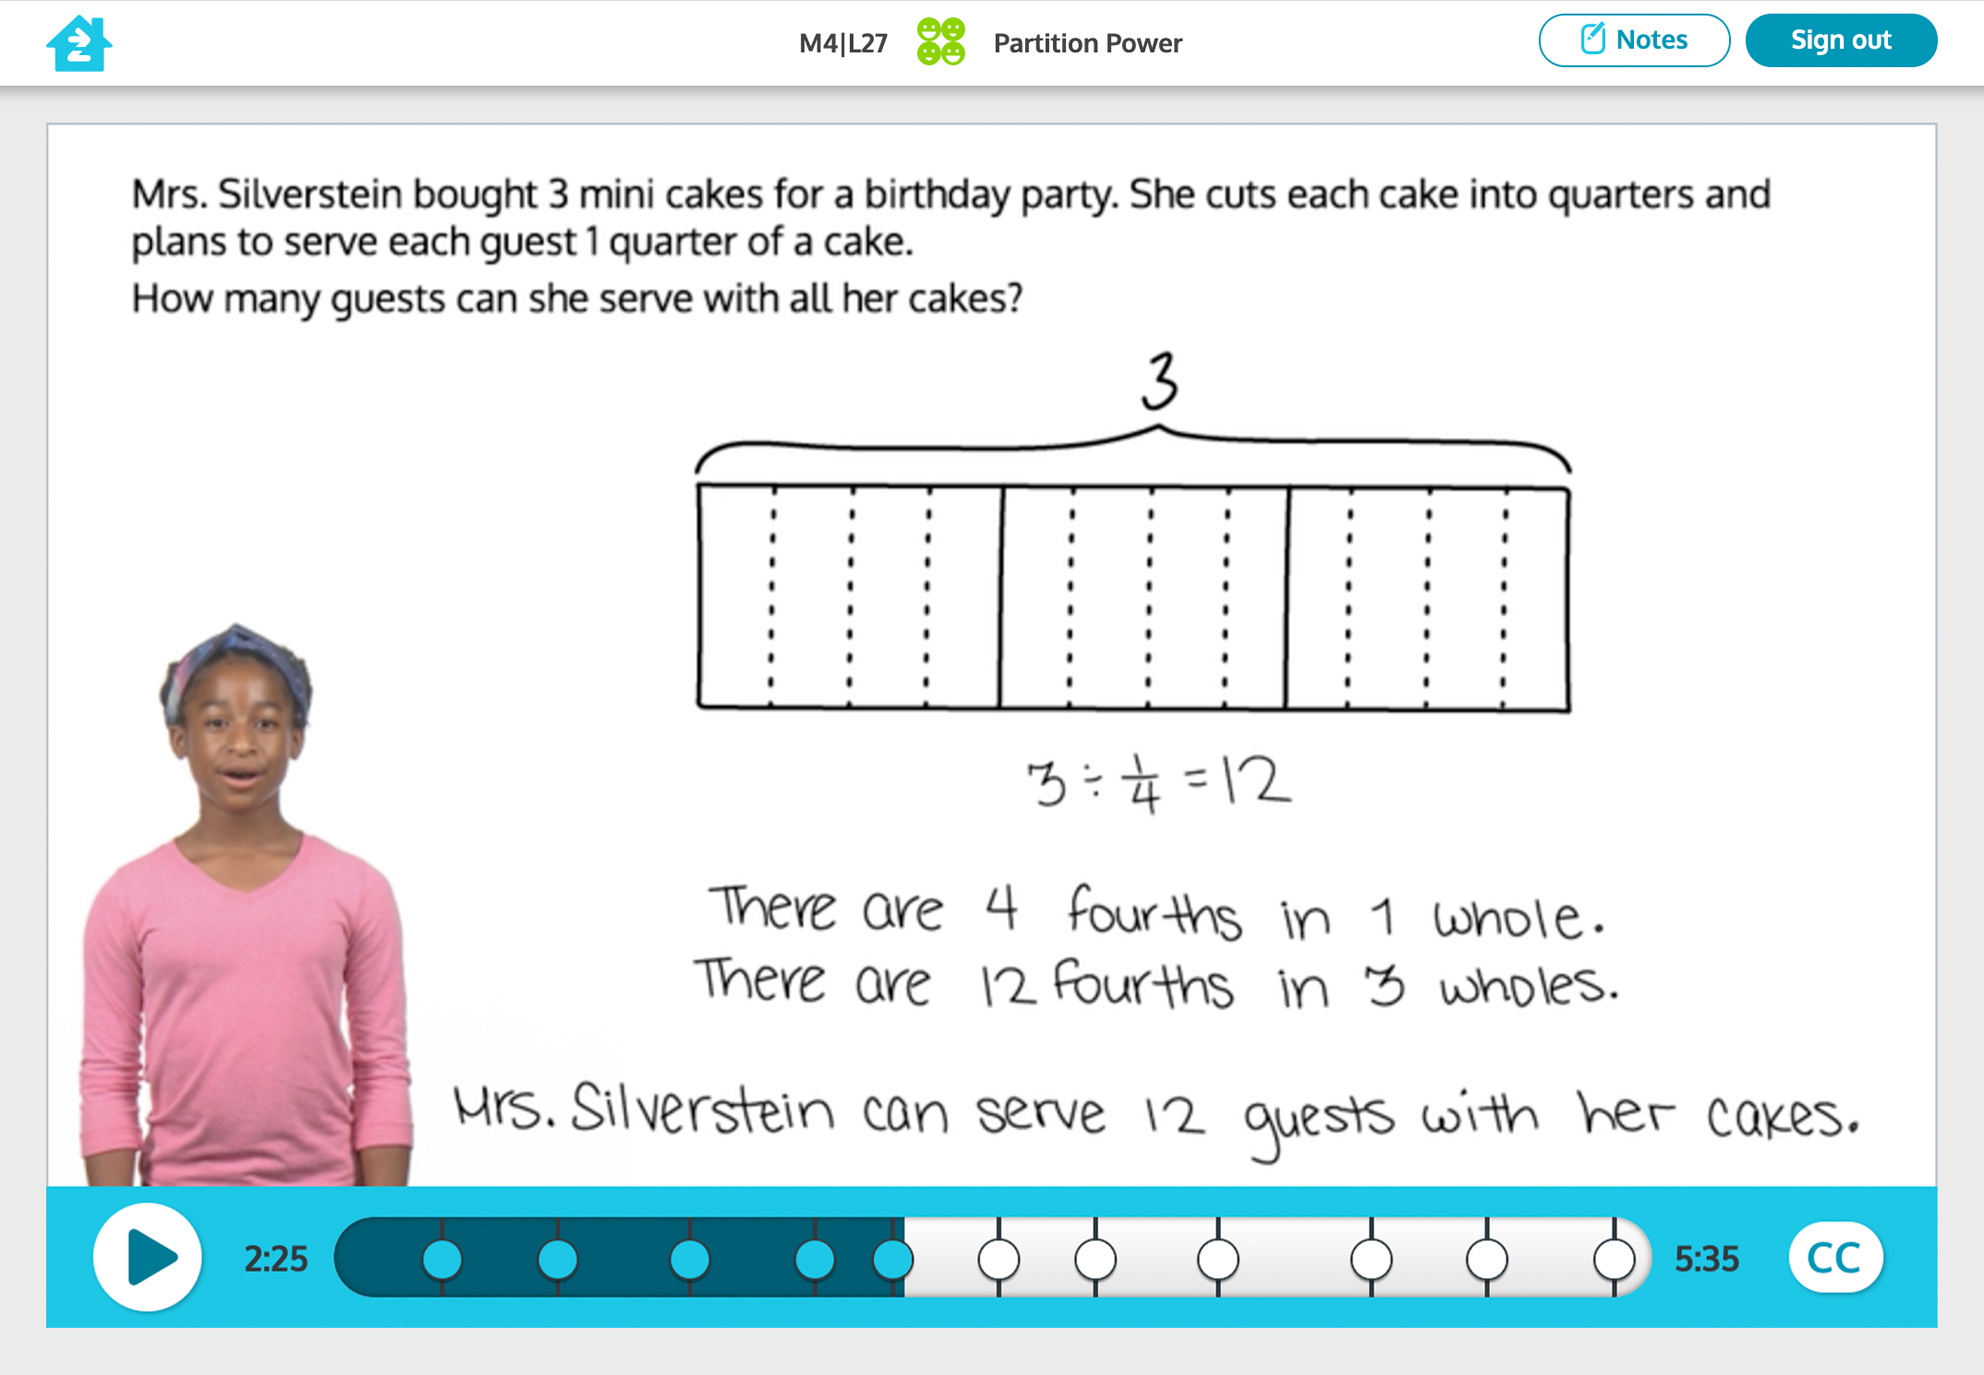 Grade 5 math activity, preview image